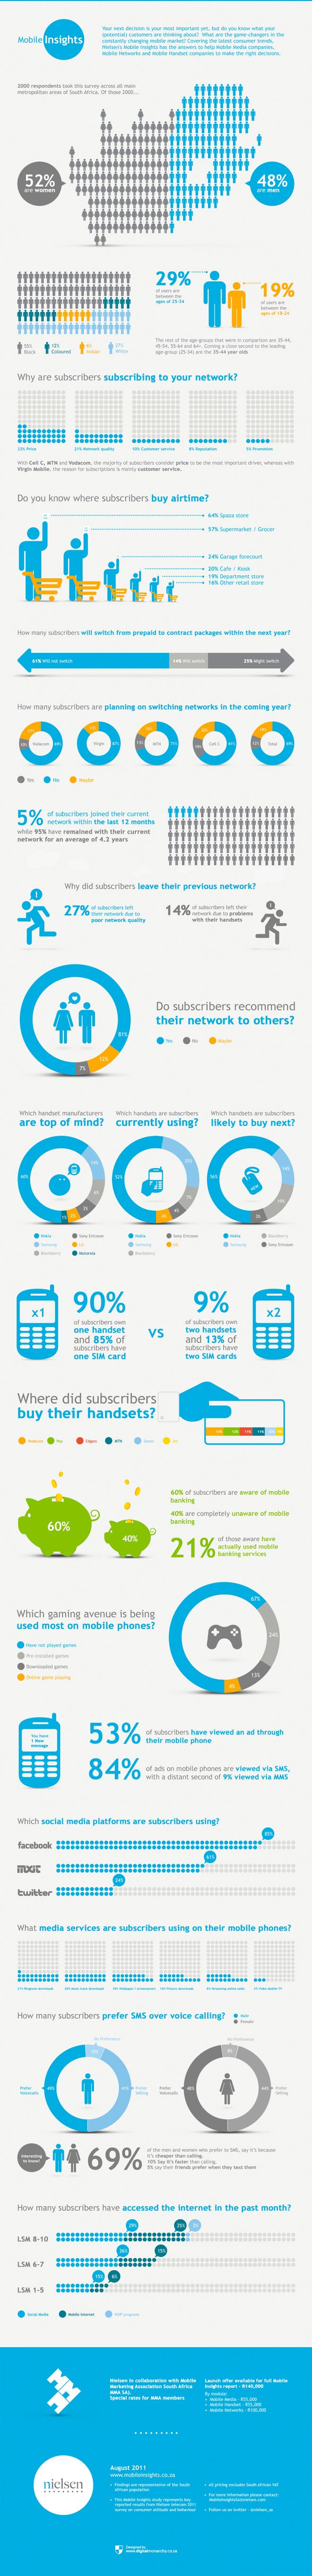 South African Mobile Market at a Glance